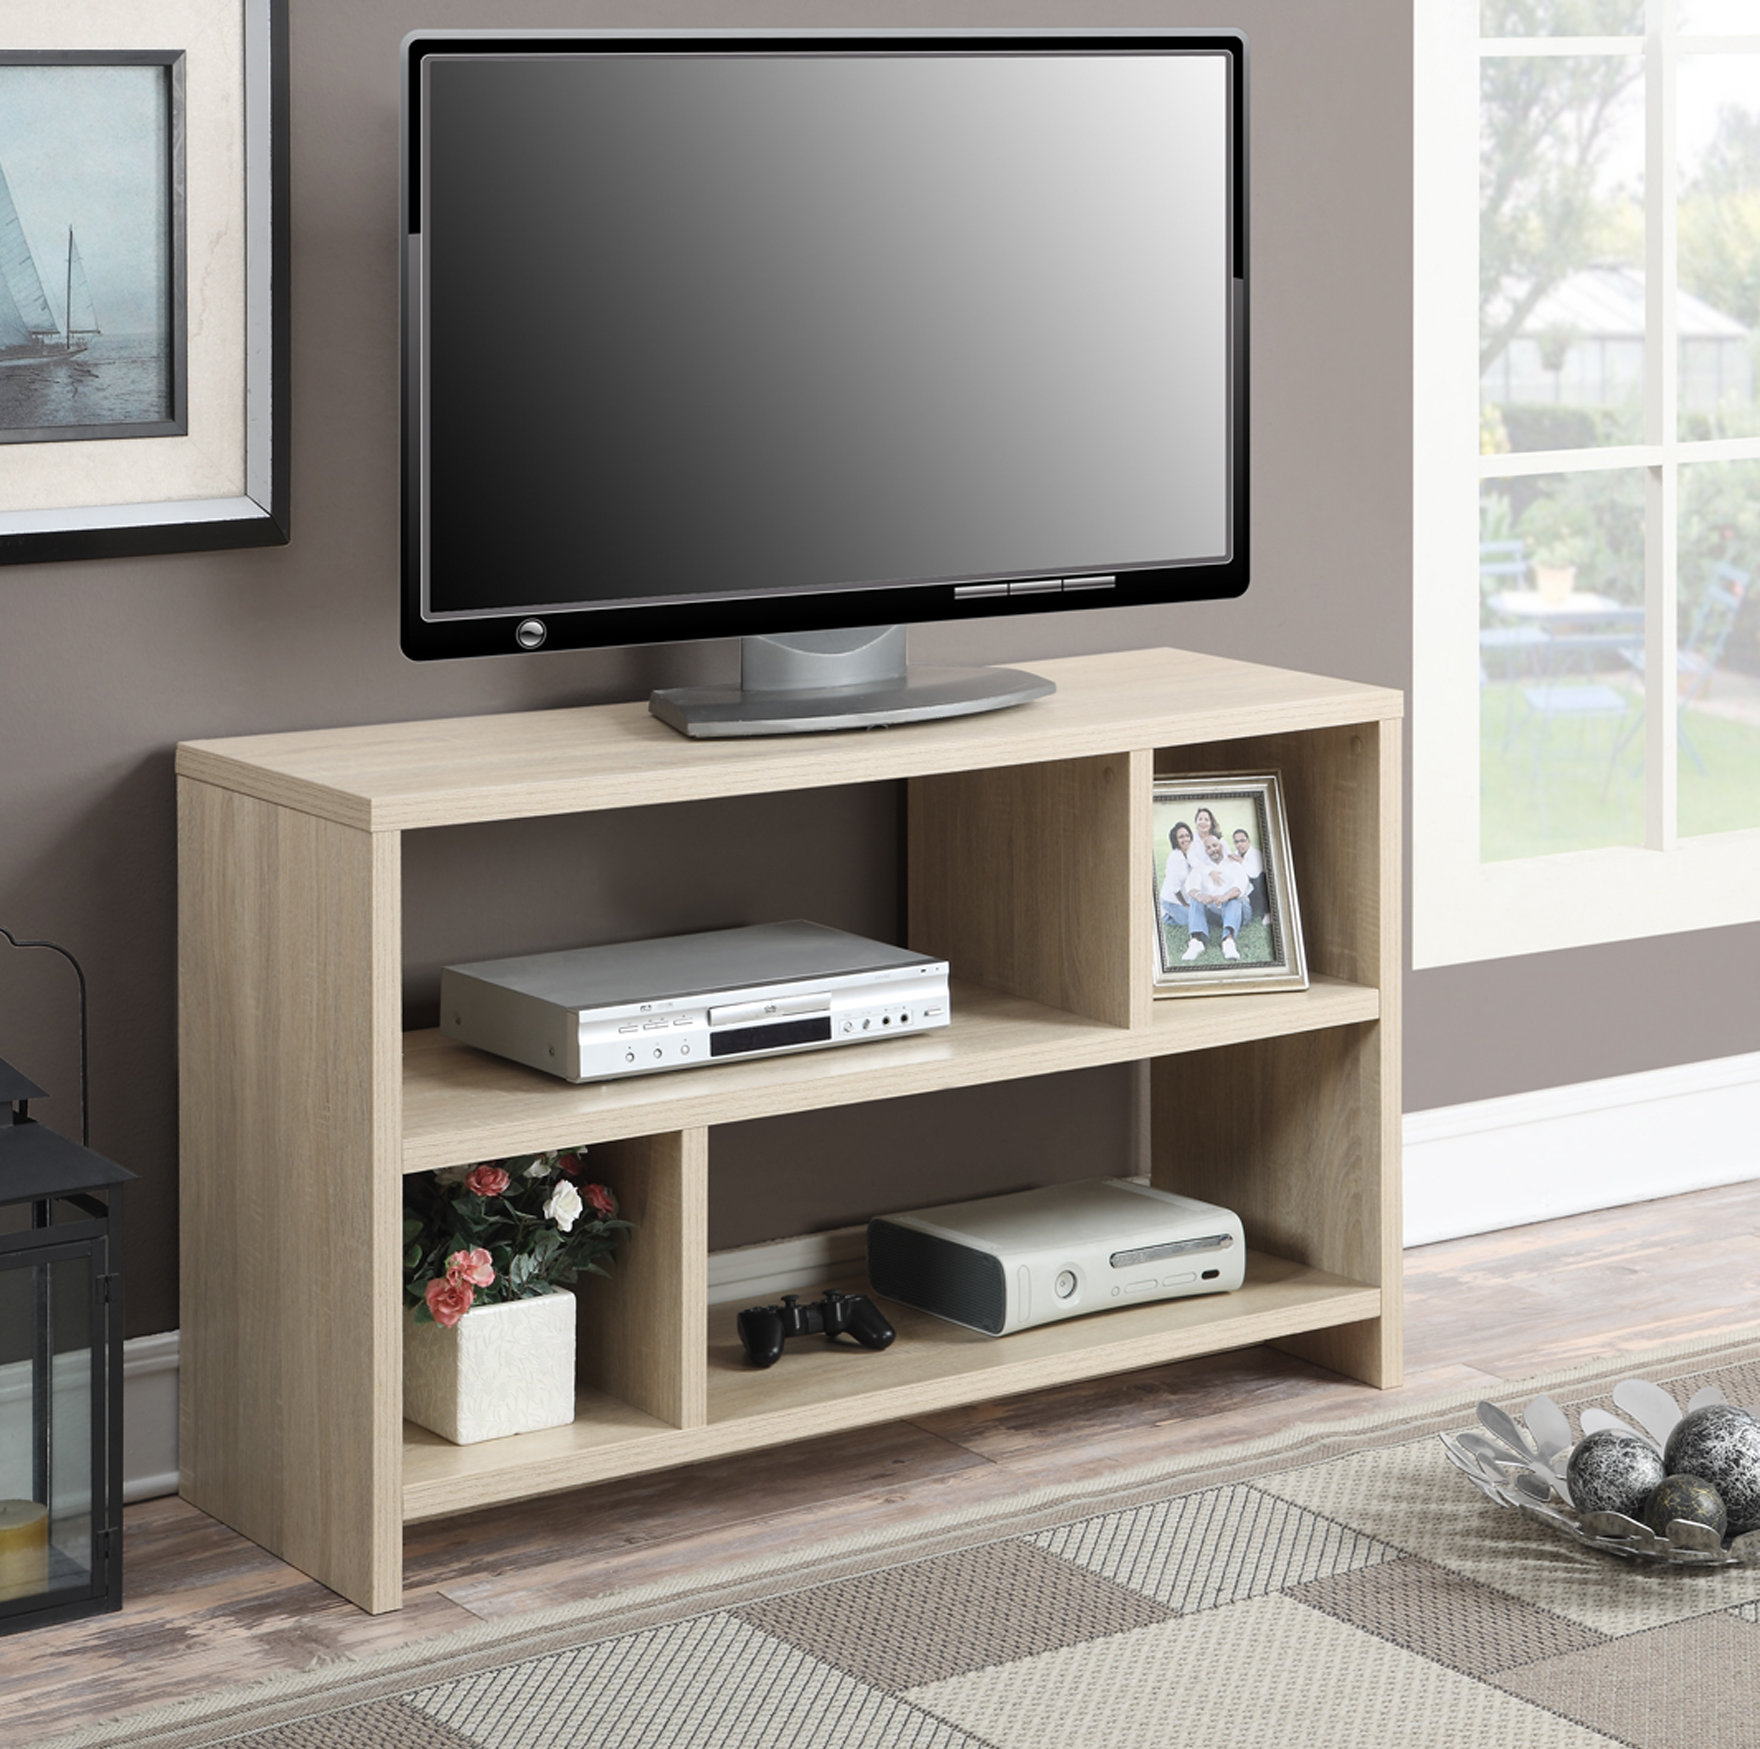 "D'aulizio Tv Stand For Tvs Up To 43"" Pertaining To Ericka Tv Stands For Tvs Up To 42"" (View 4 of 20)"